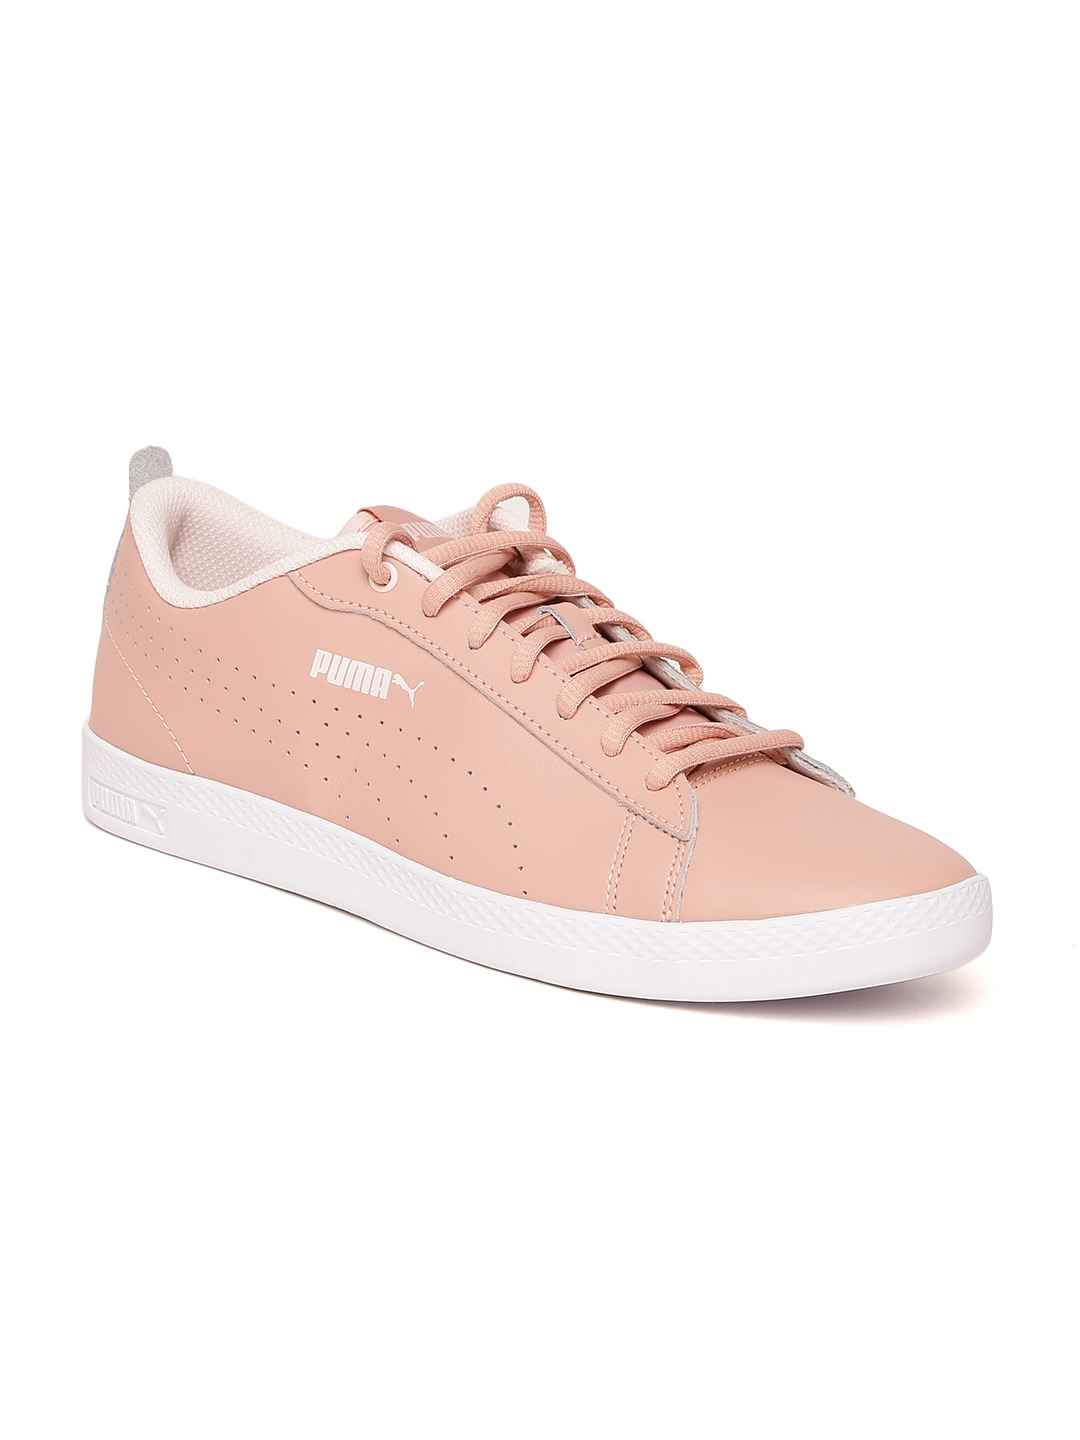 L Coloured Sneakers Leather Puma V2 Buy Peach Perforated Women Smash ctwqqS1YO